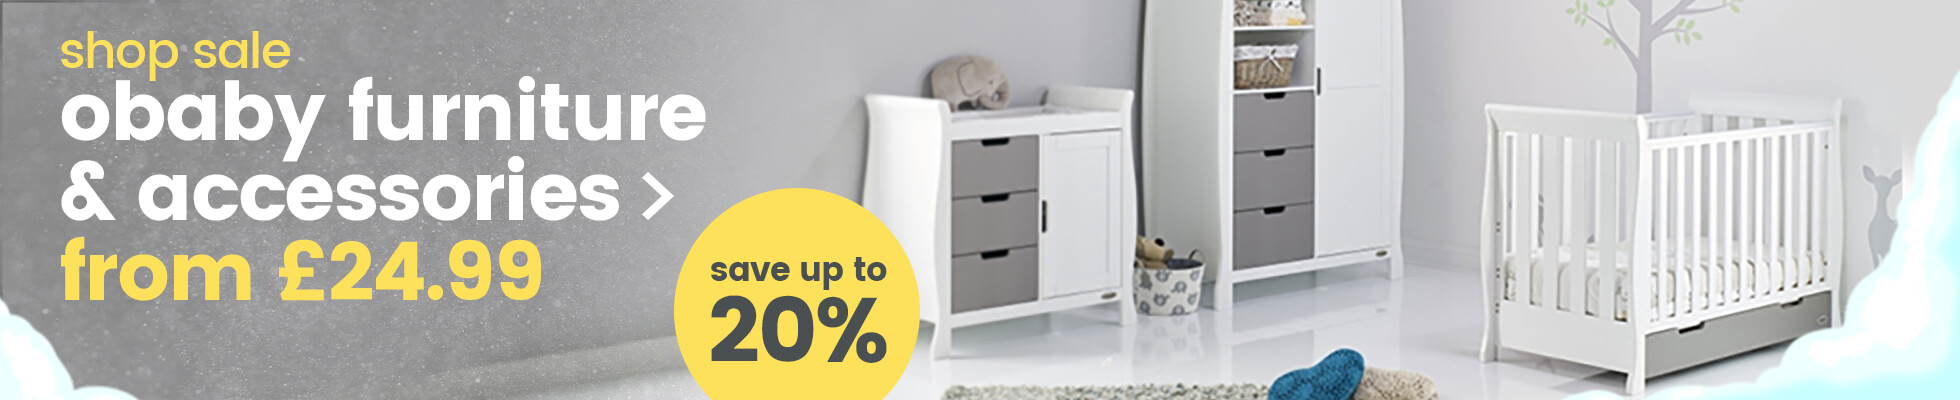 Save up to 20% on Obaby furniture & accessories